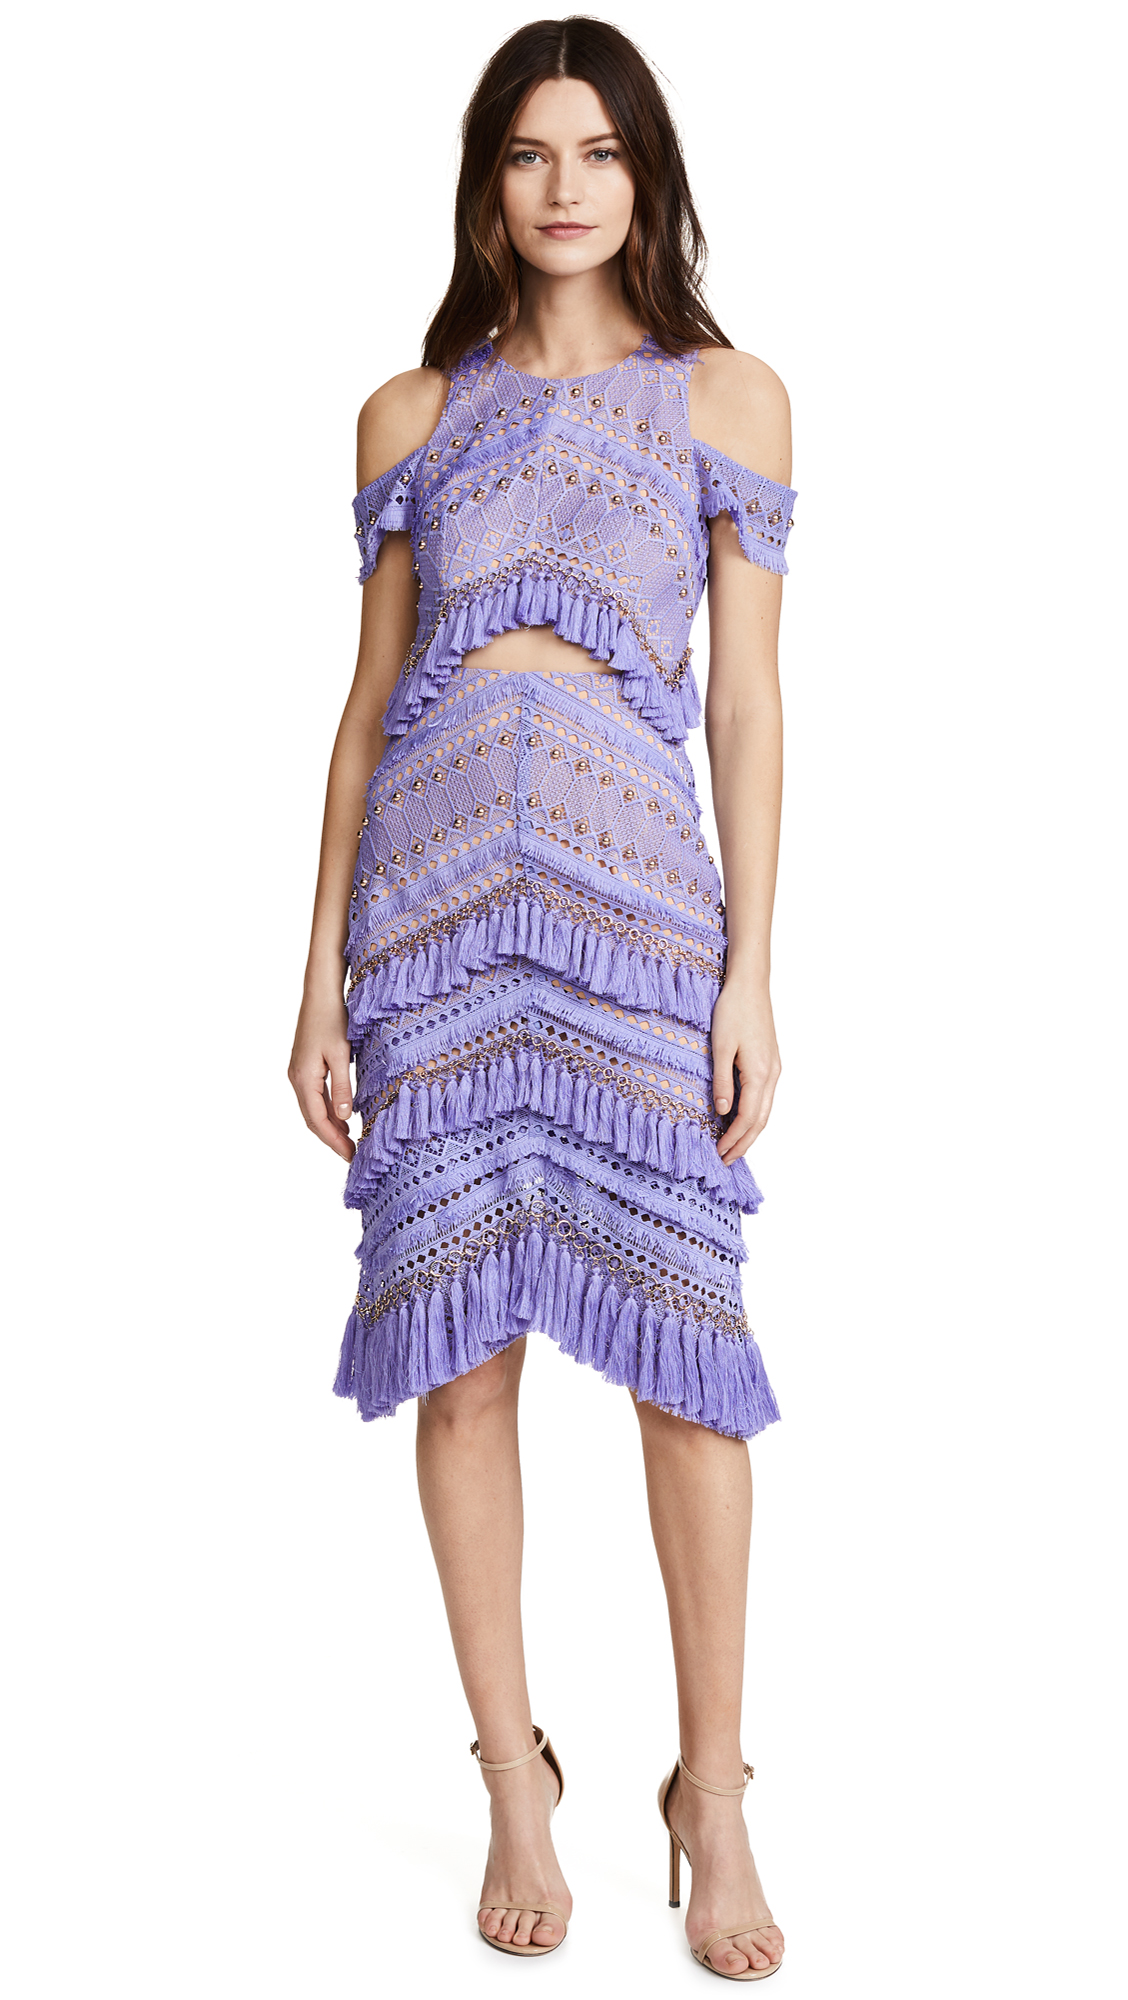 THURLEY Candy Dress